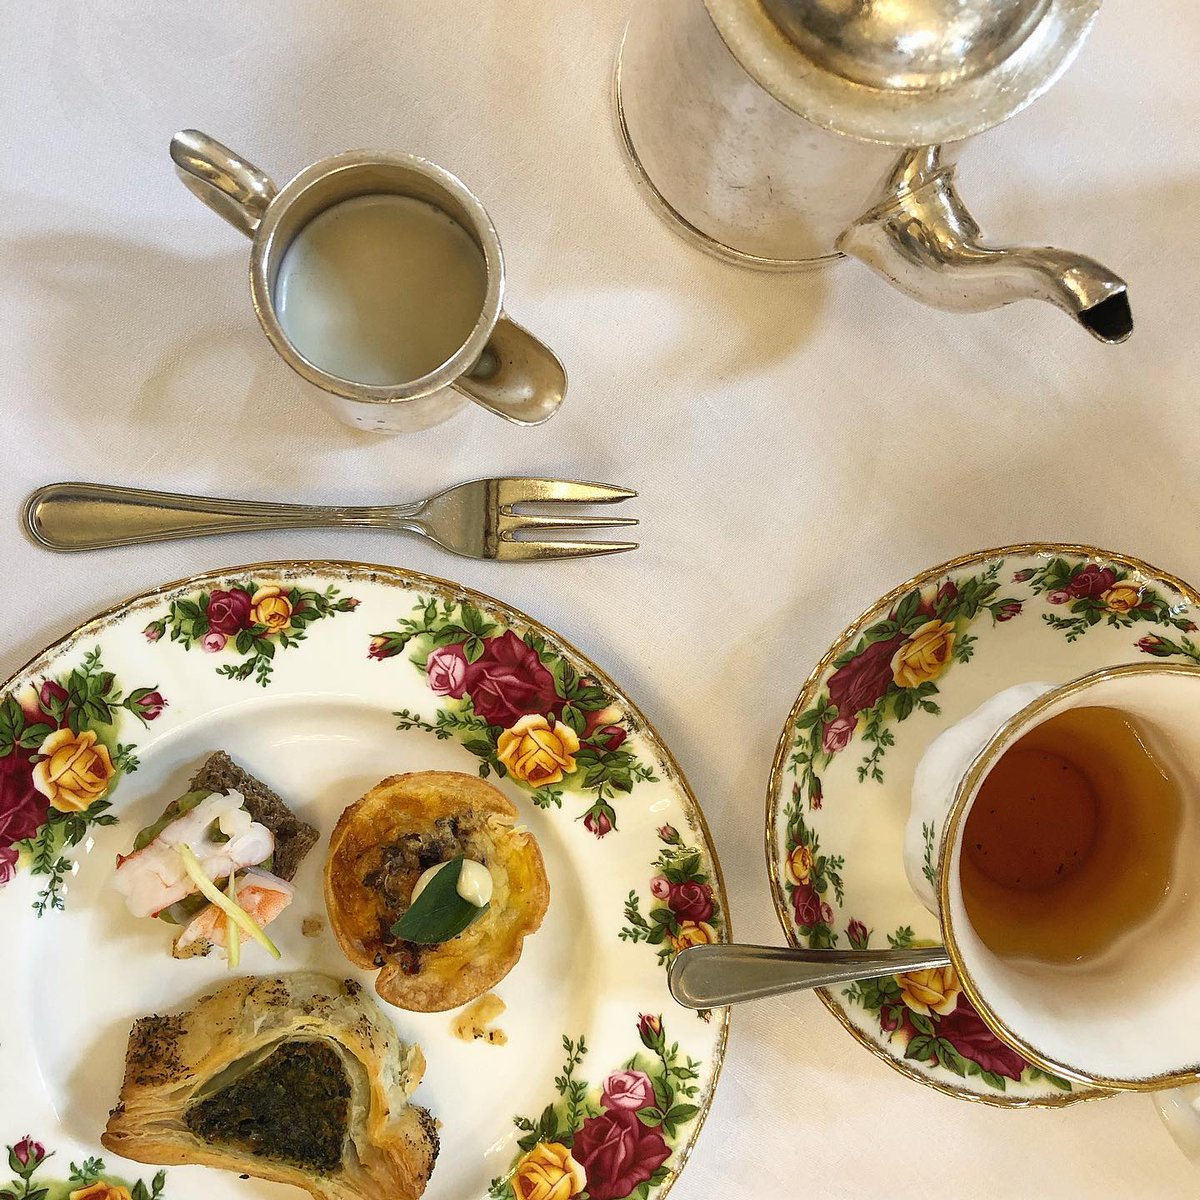 Mum's birthday calls for #afternoonhightea #sydneyeats pic.twitter.com/xDylVg0bEy